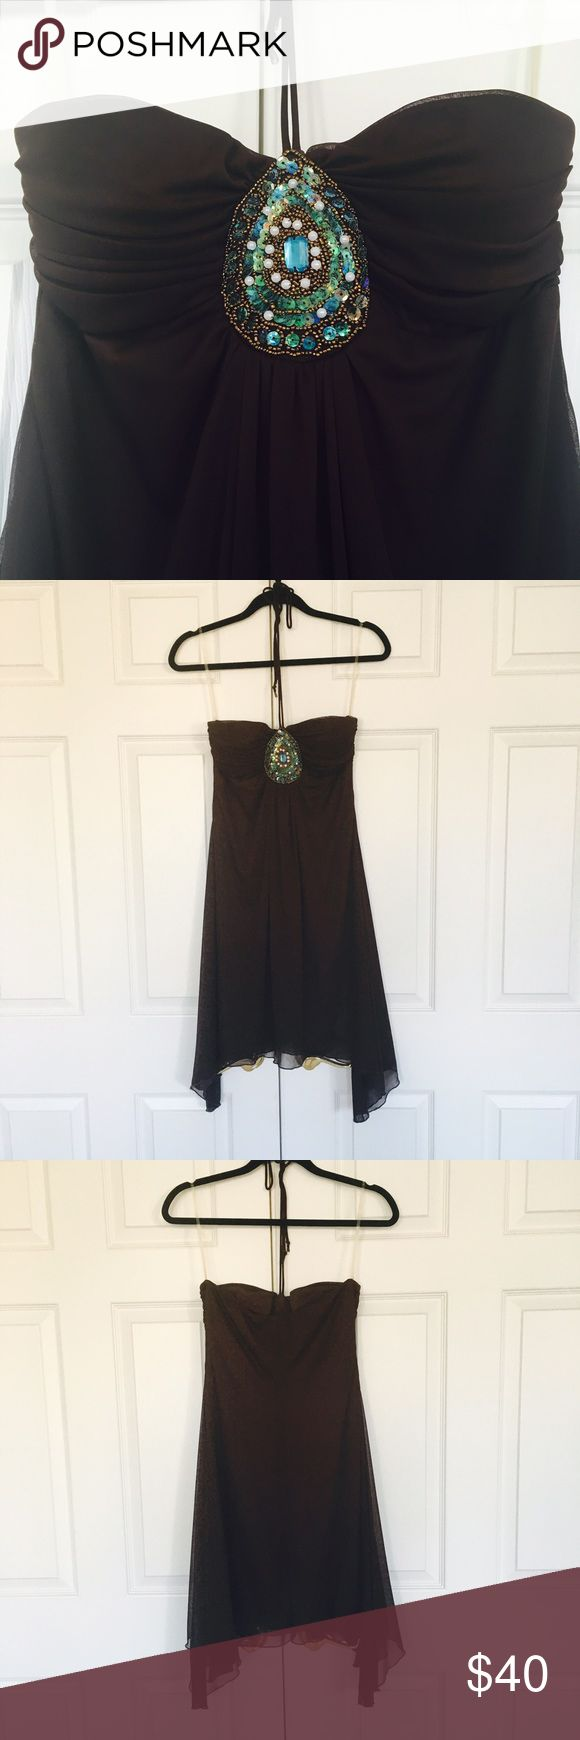 Sequin Sleeveless Dress Beautiful brown sequin dress perfect for all occasions! The material is flowy with a dark lining. B Darlin Dresses